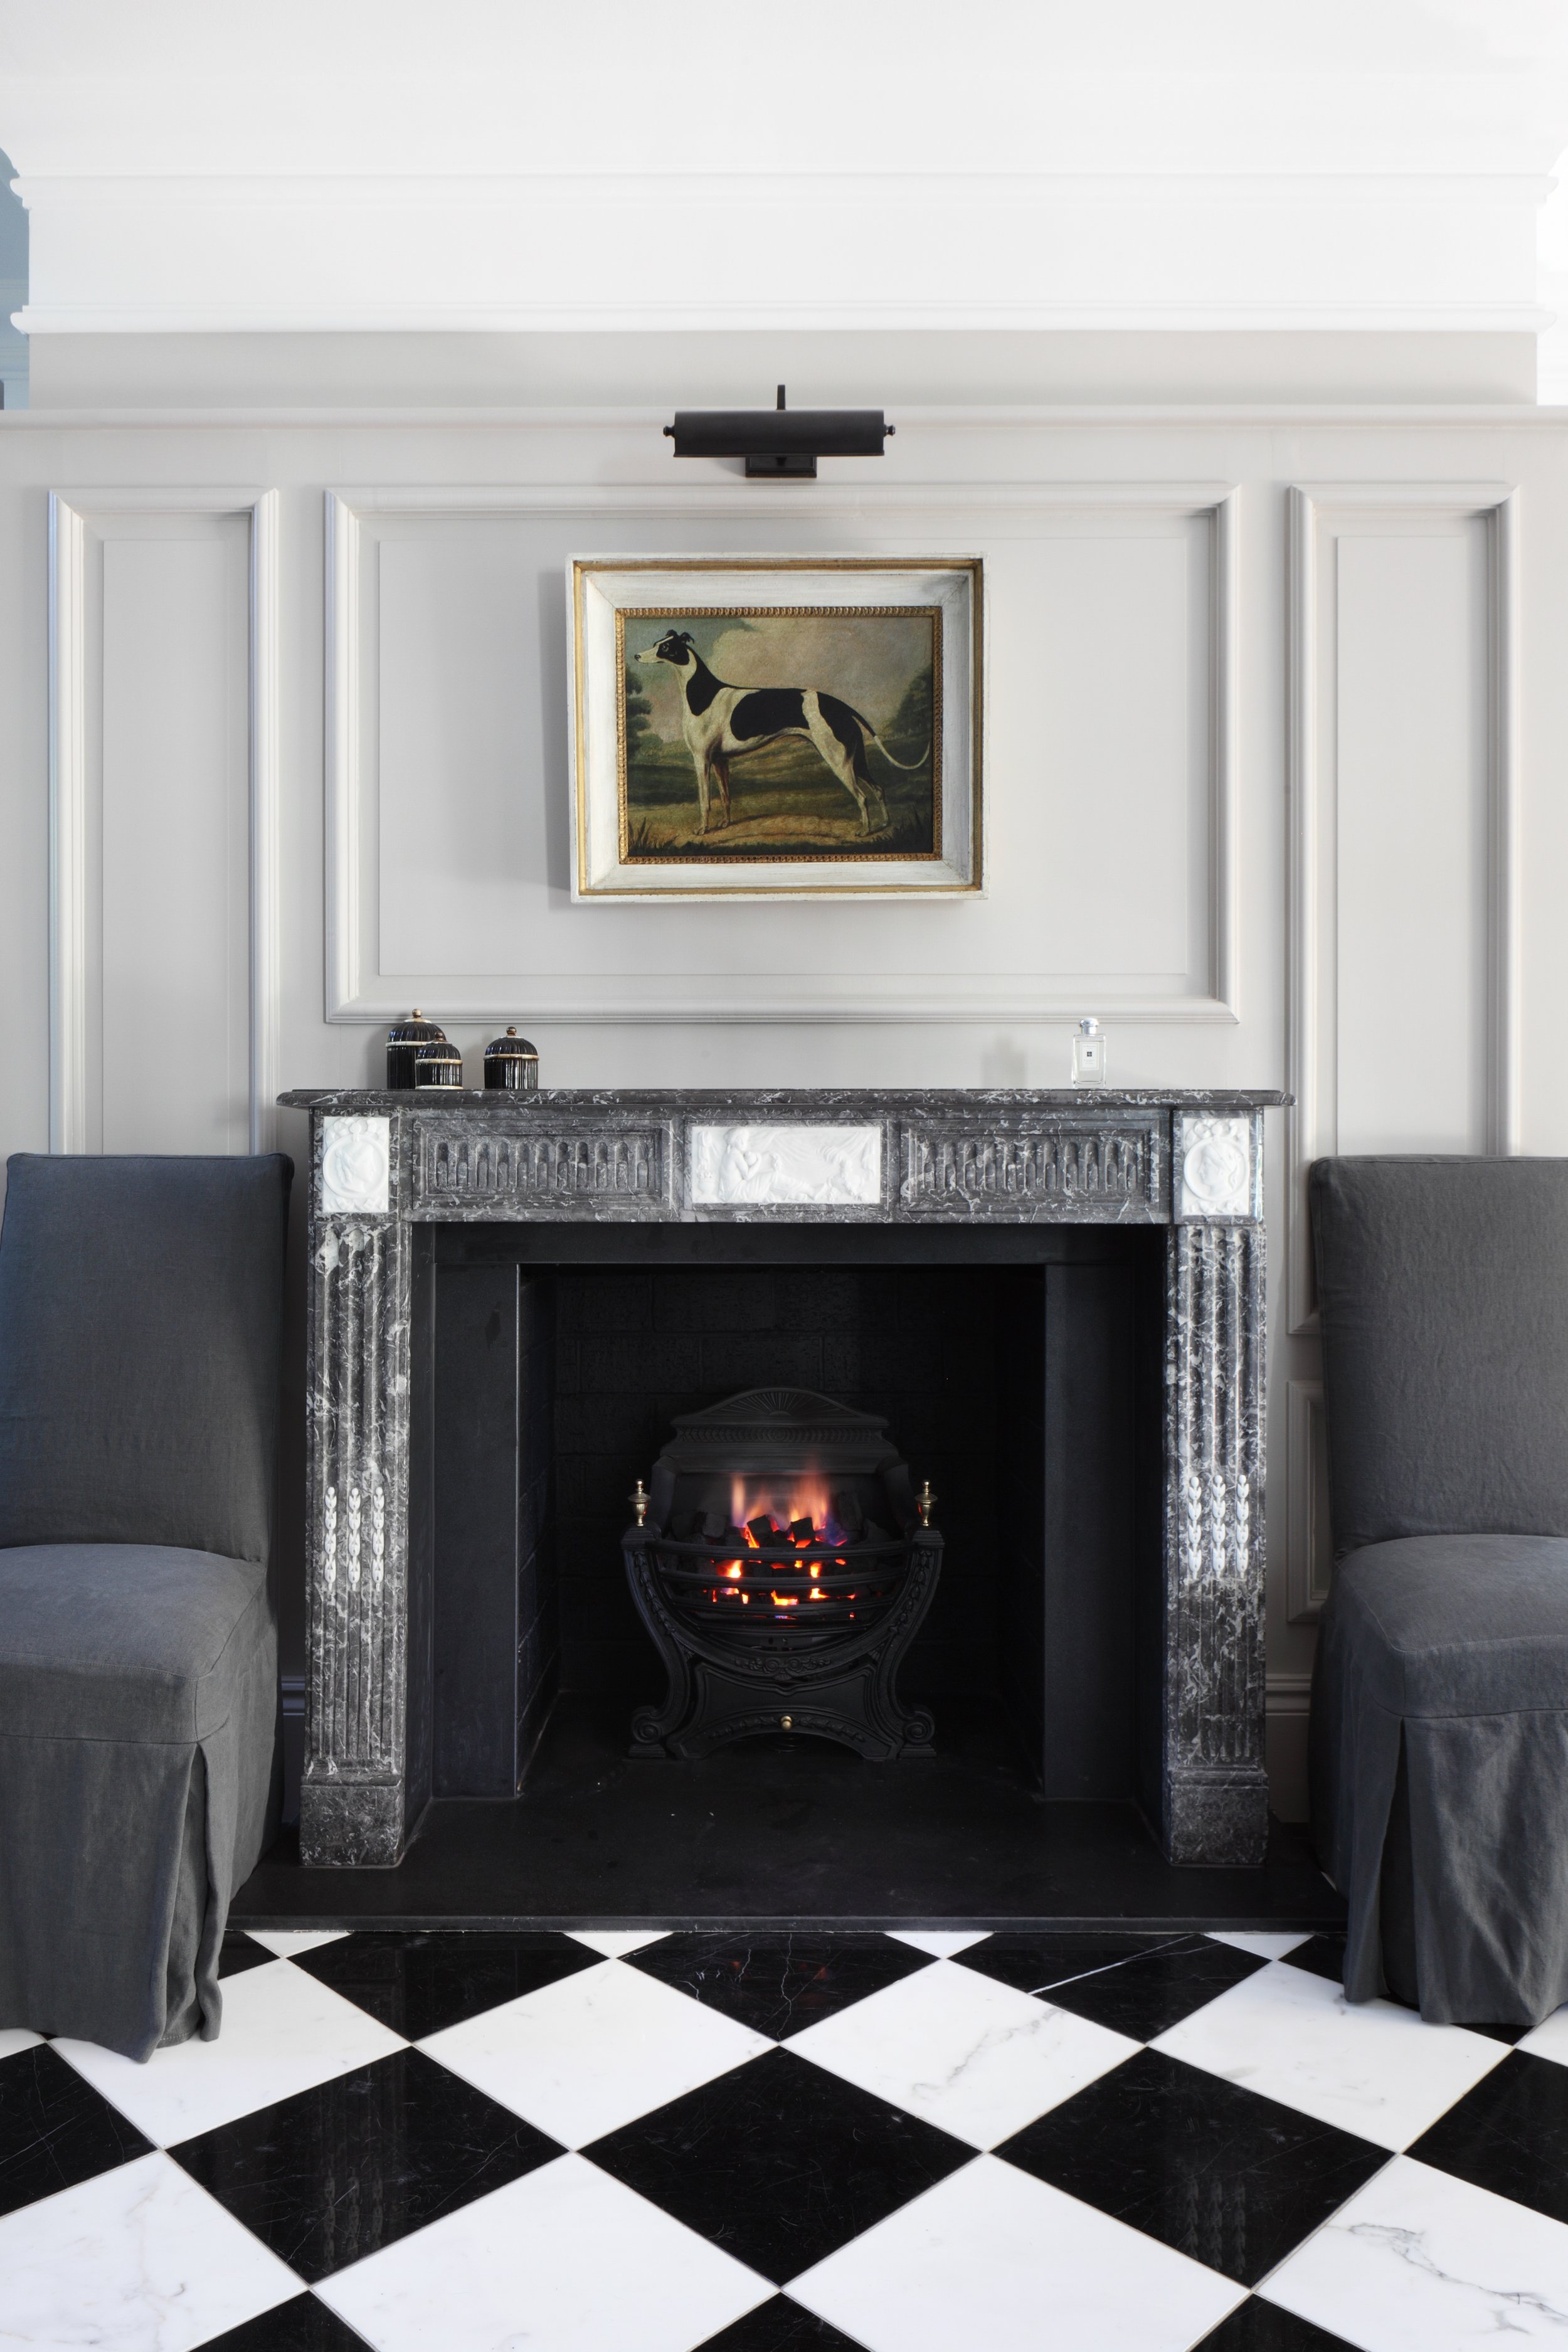 This image is from our project in Beaconsfield.  Click here  to see the rest of the project.